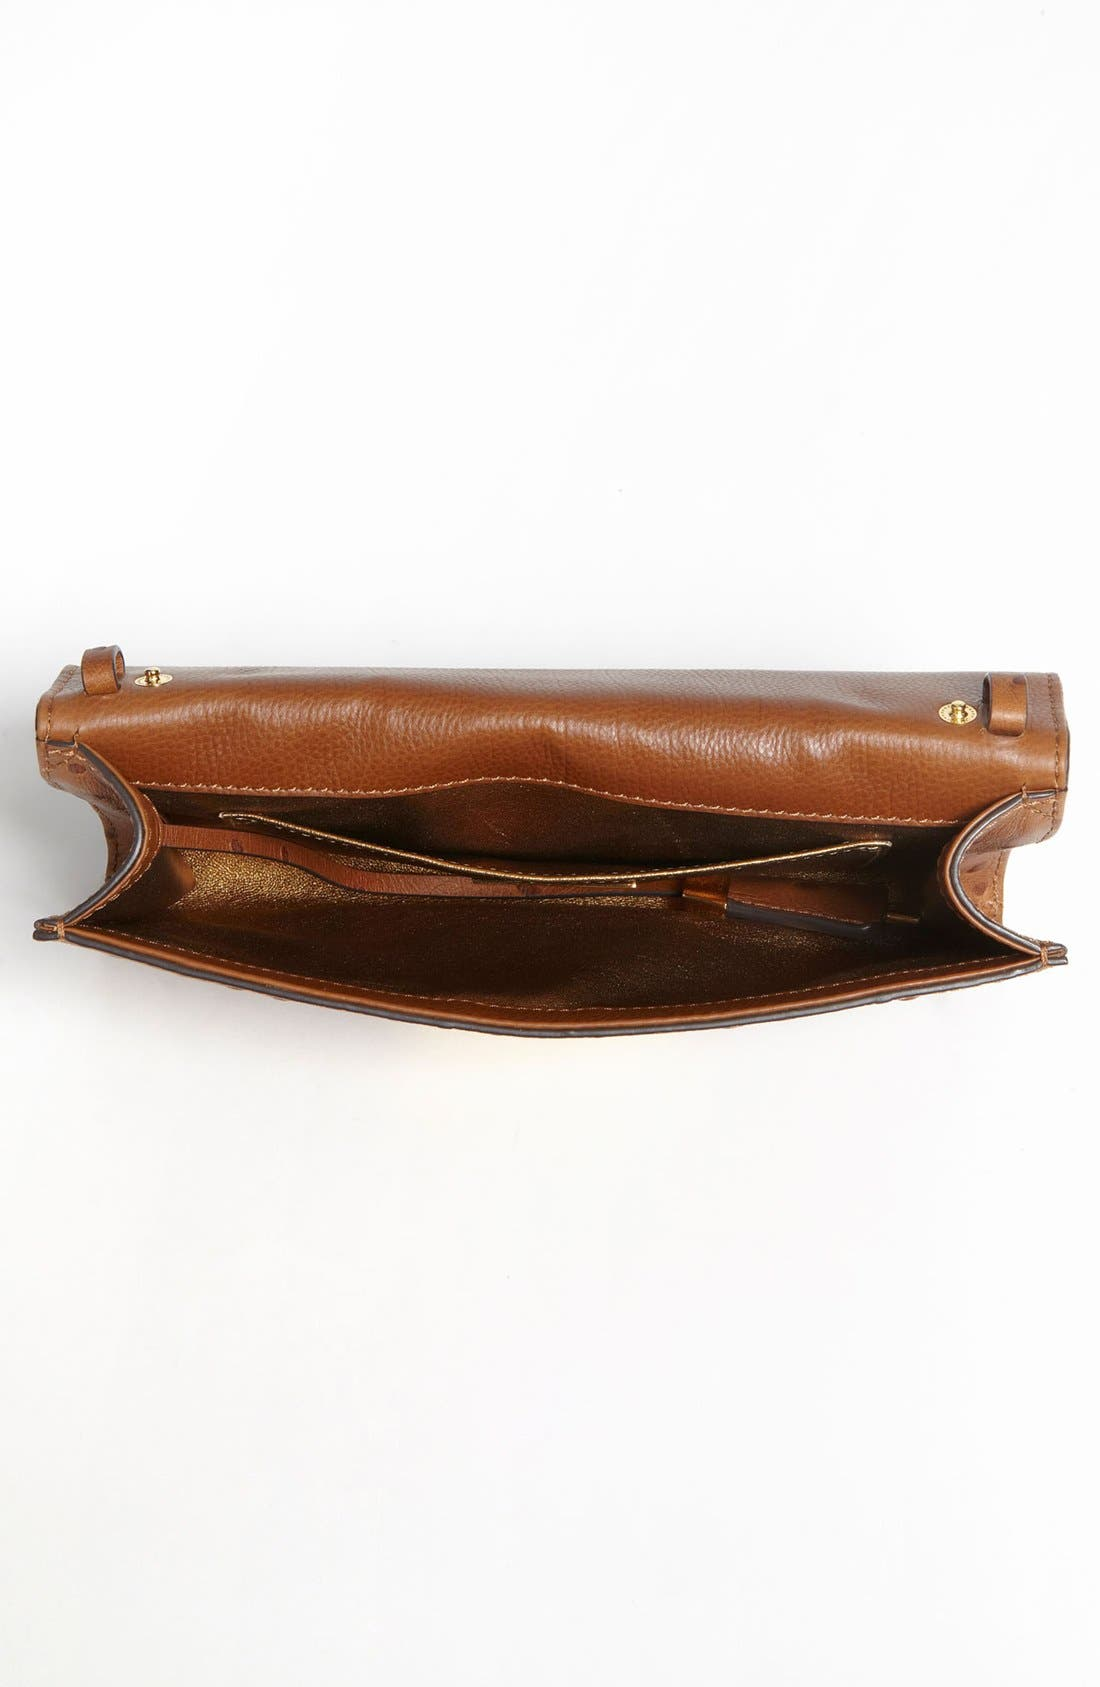 Alternate Image 2  - Michael Kors 'Gia' Ostrich Embossed Leather Clutch